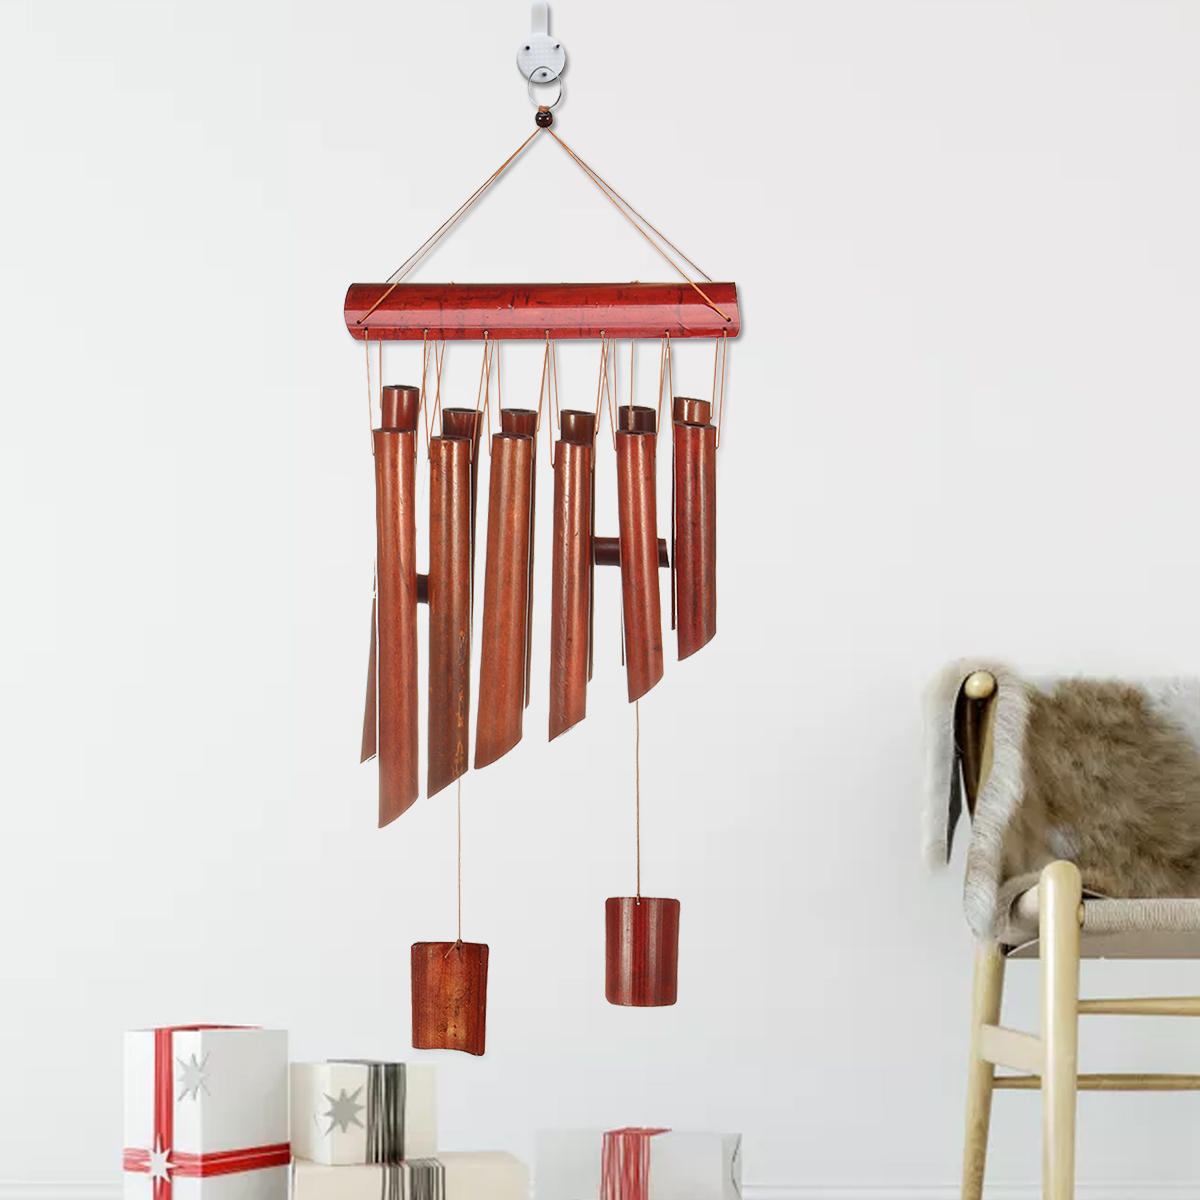 12 Tubes Bamboo Wind Chime Wooden Garden Yark Patio Home Decorations Hanging Ornament